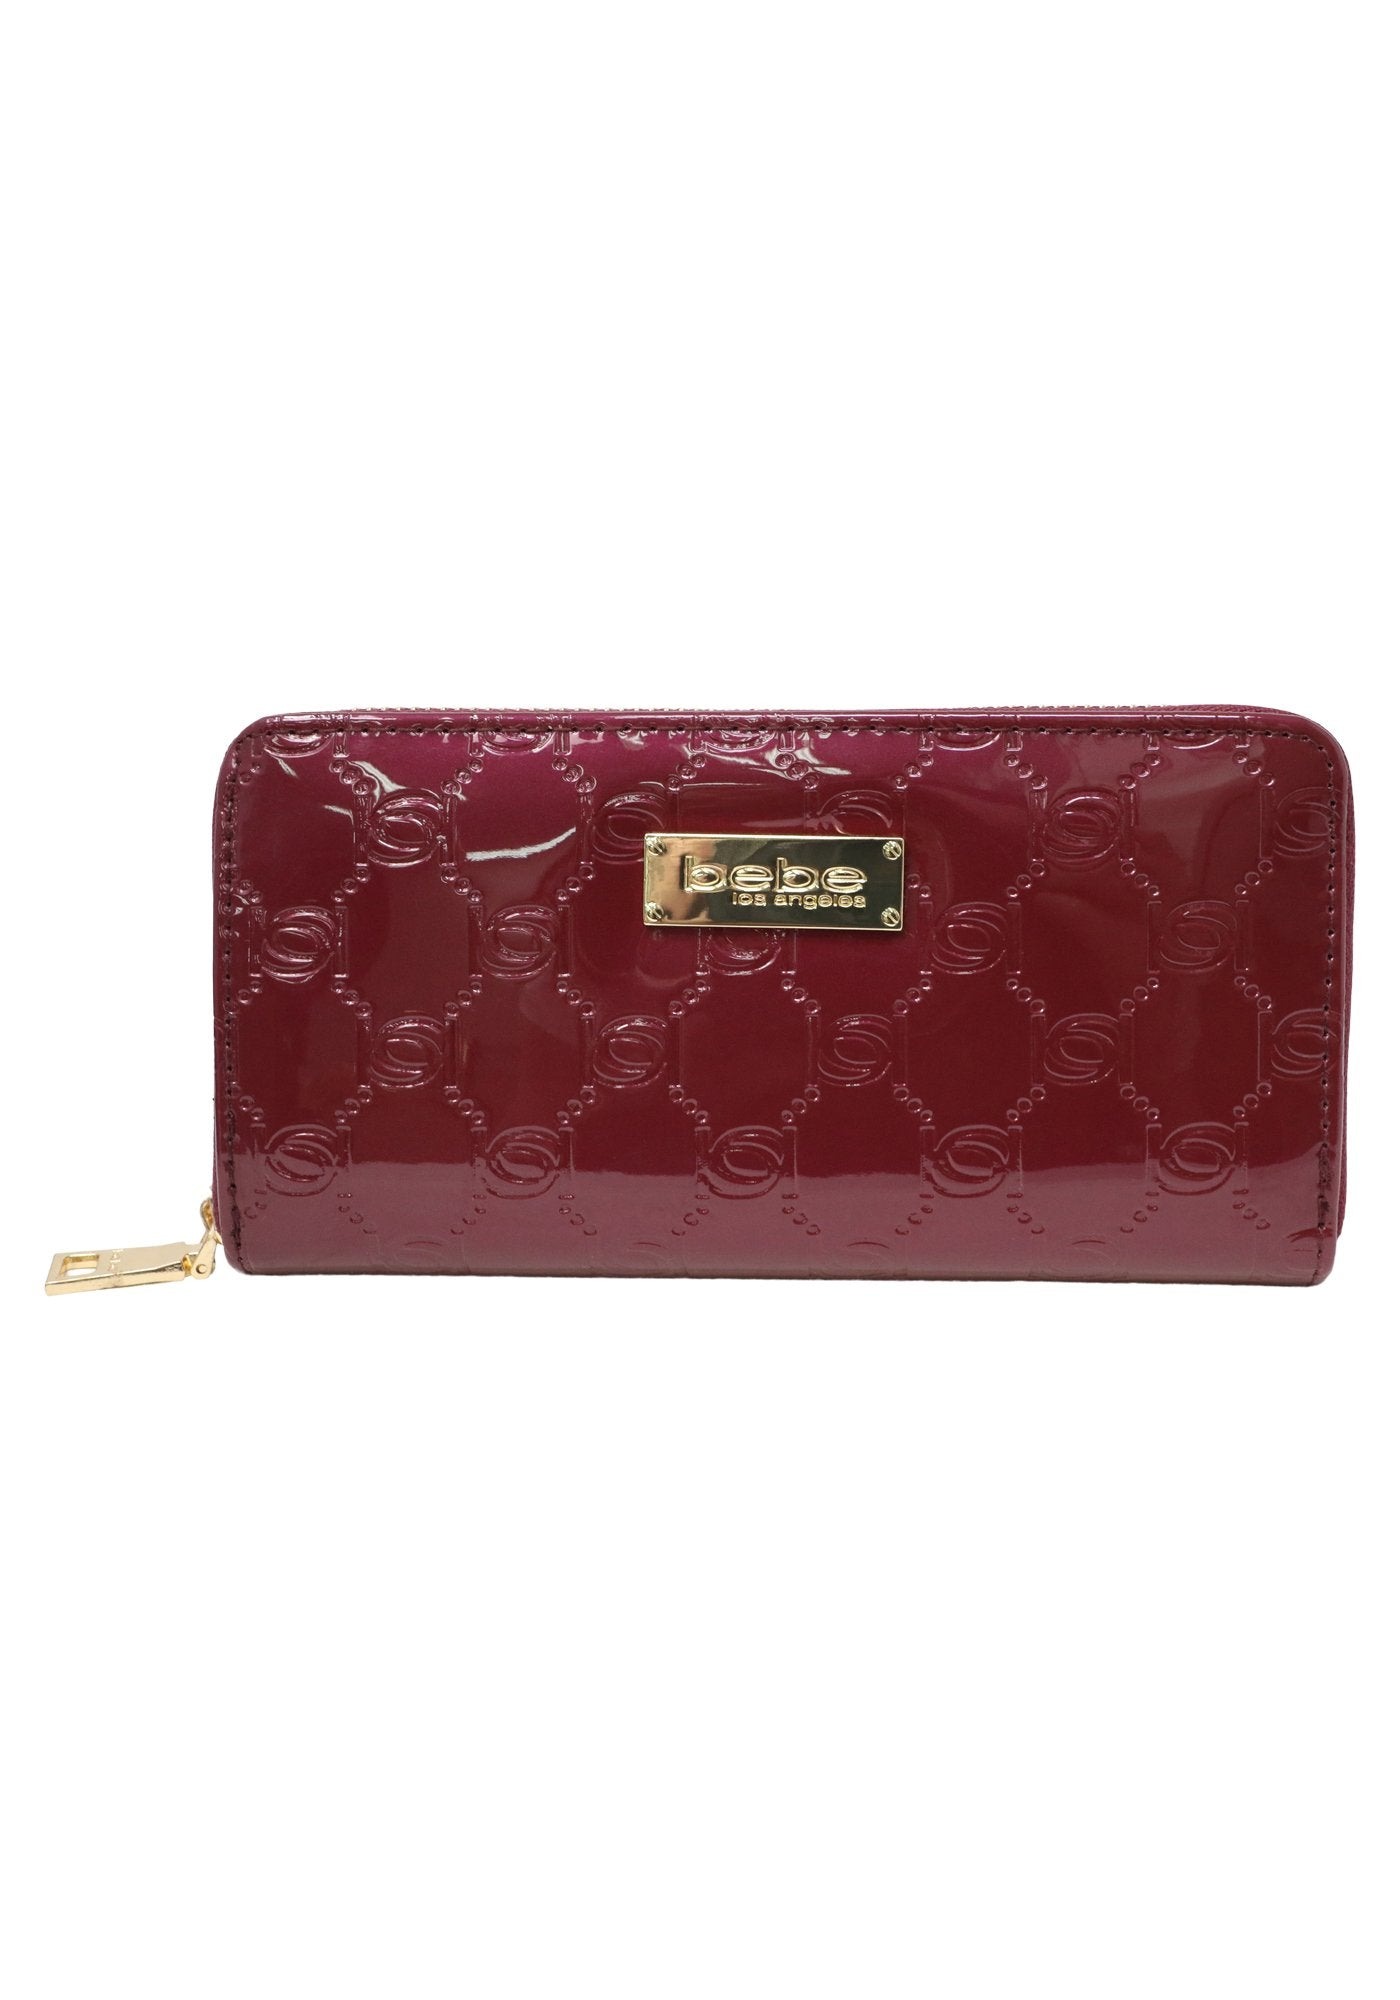 Bebe Women's Dana Patent Wallet, Size Mini in Berry